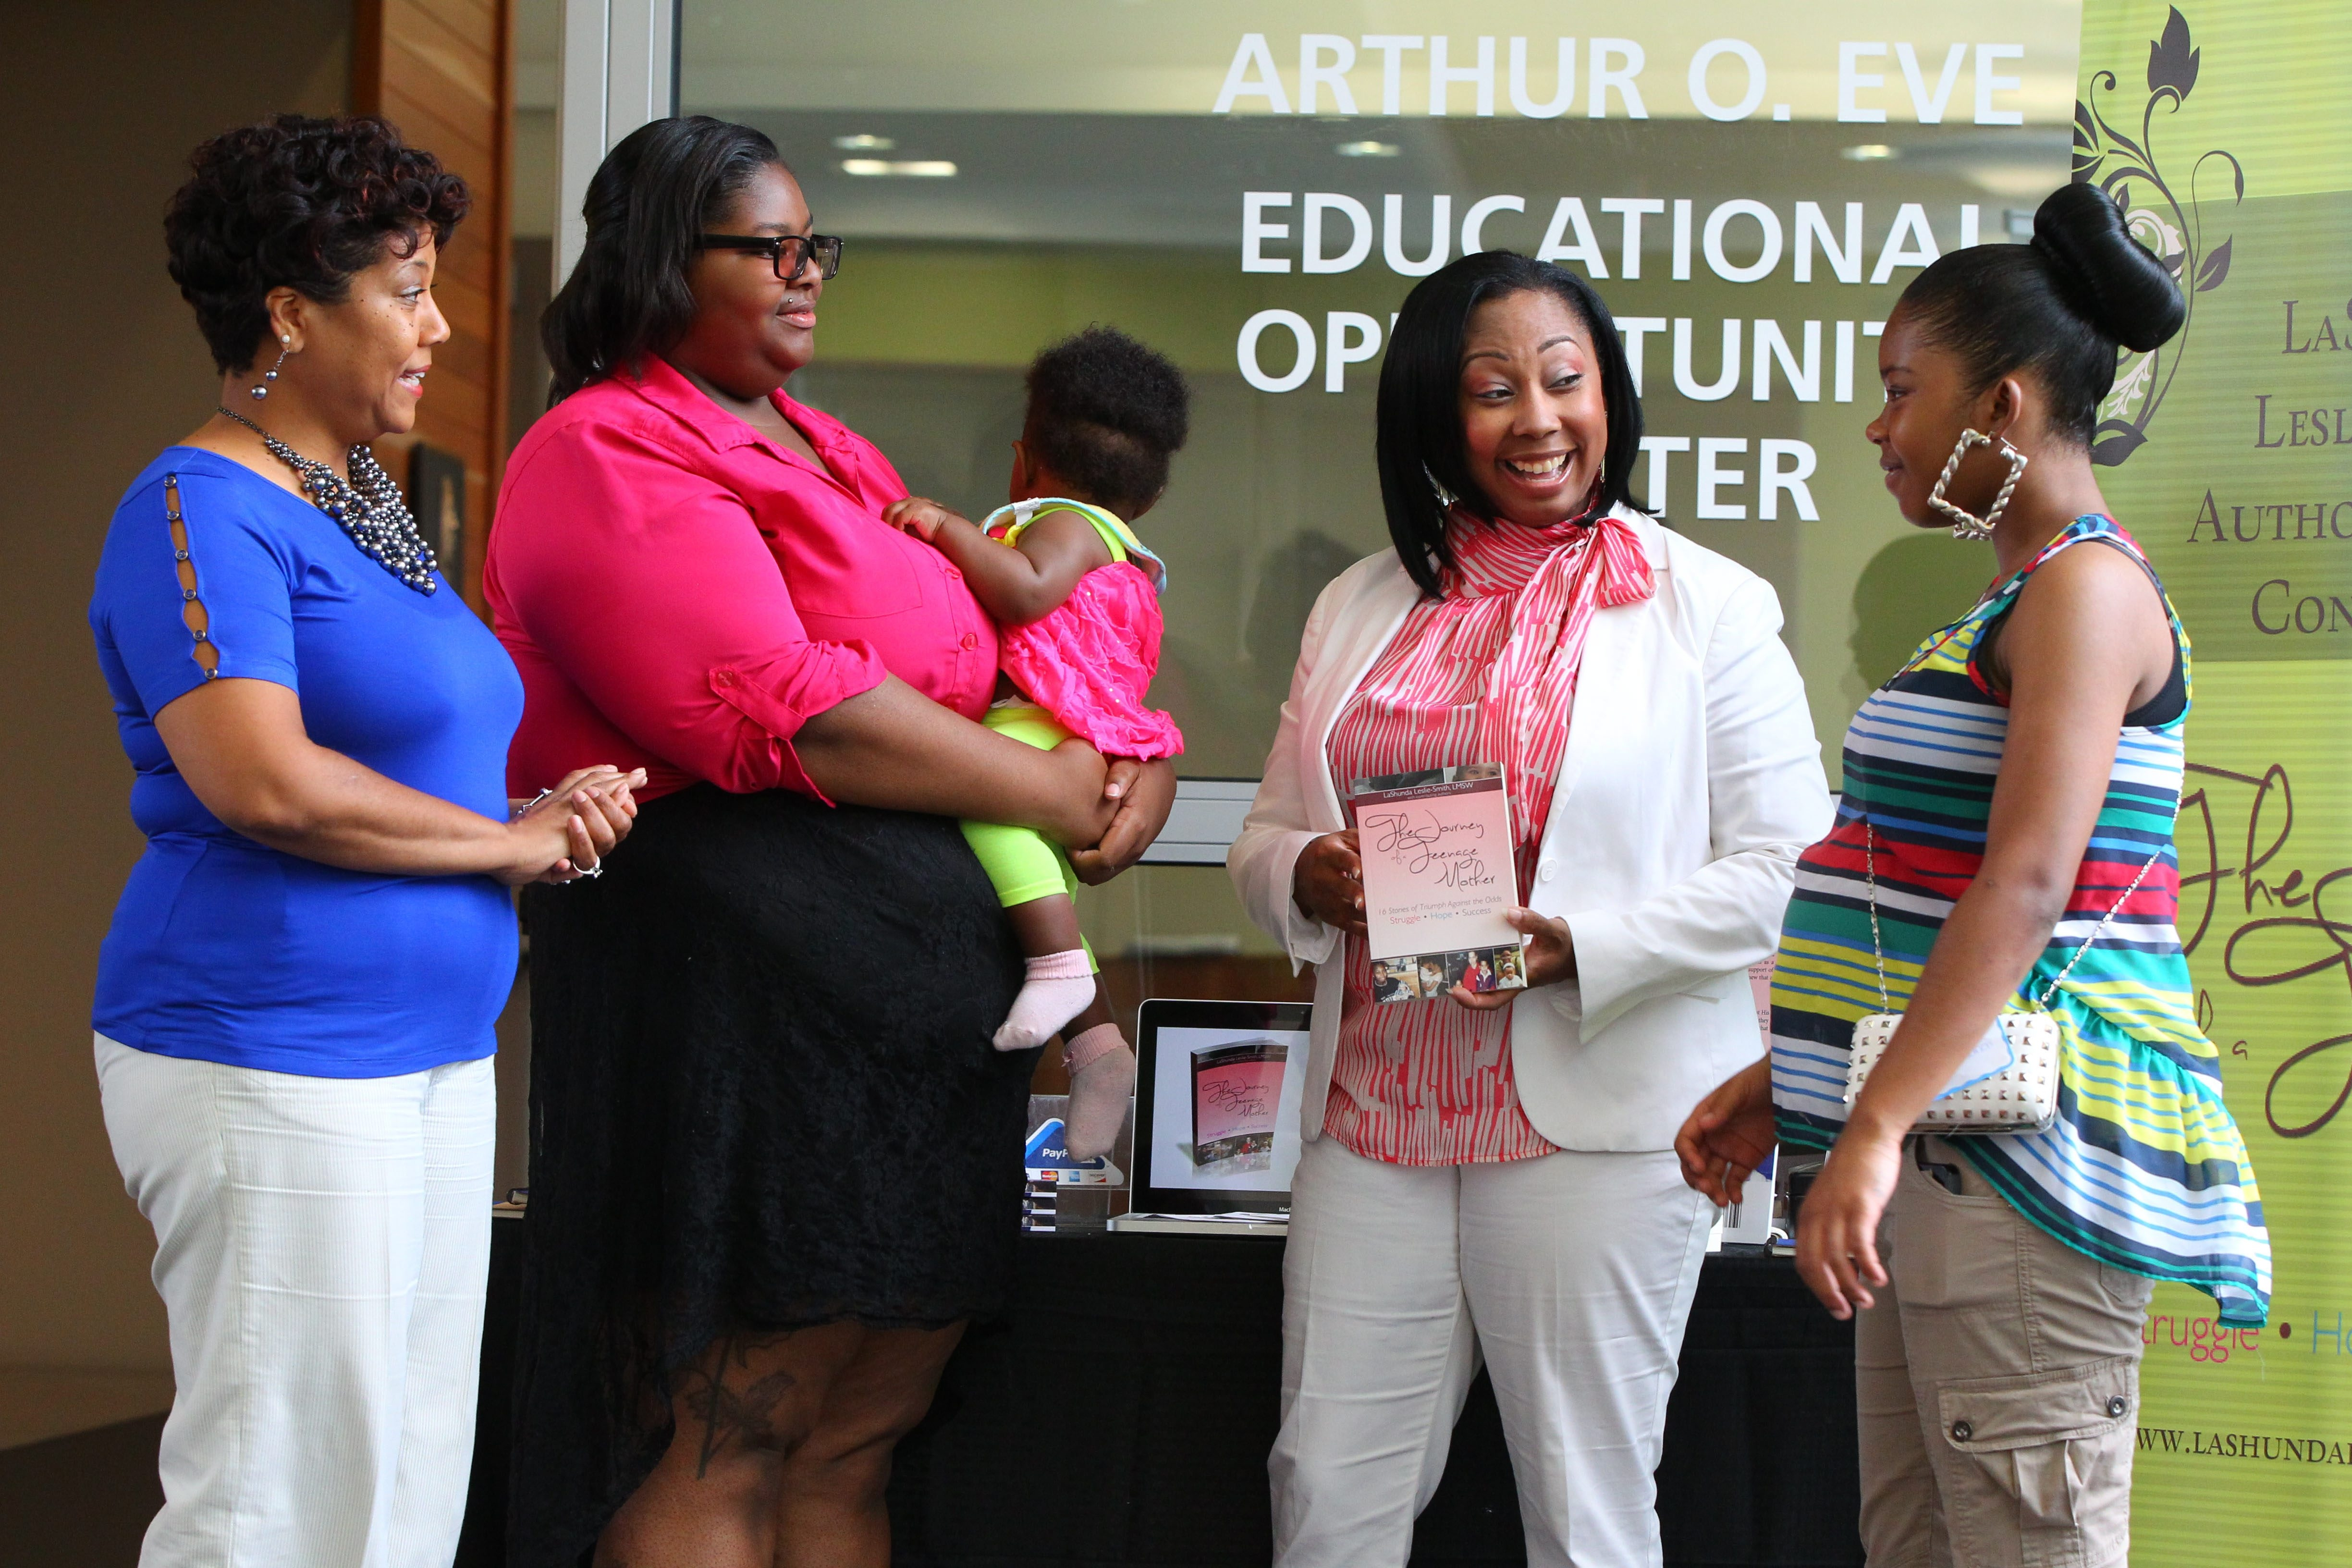 From left, Janice White, executive director of True Community Development Corp.; Kiari Walker and her daughter Kaimaris Long; LaShunda Leslie-Smith, educator, author and motivational speaker; and LaDomanai Wiggins attend the second annual Young Parents Campus reception and awards Saturday at the Arthur O. Eve Educational Opportunity Center on Ellicott Street.